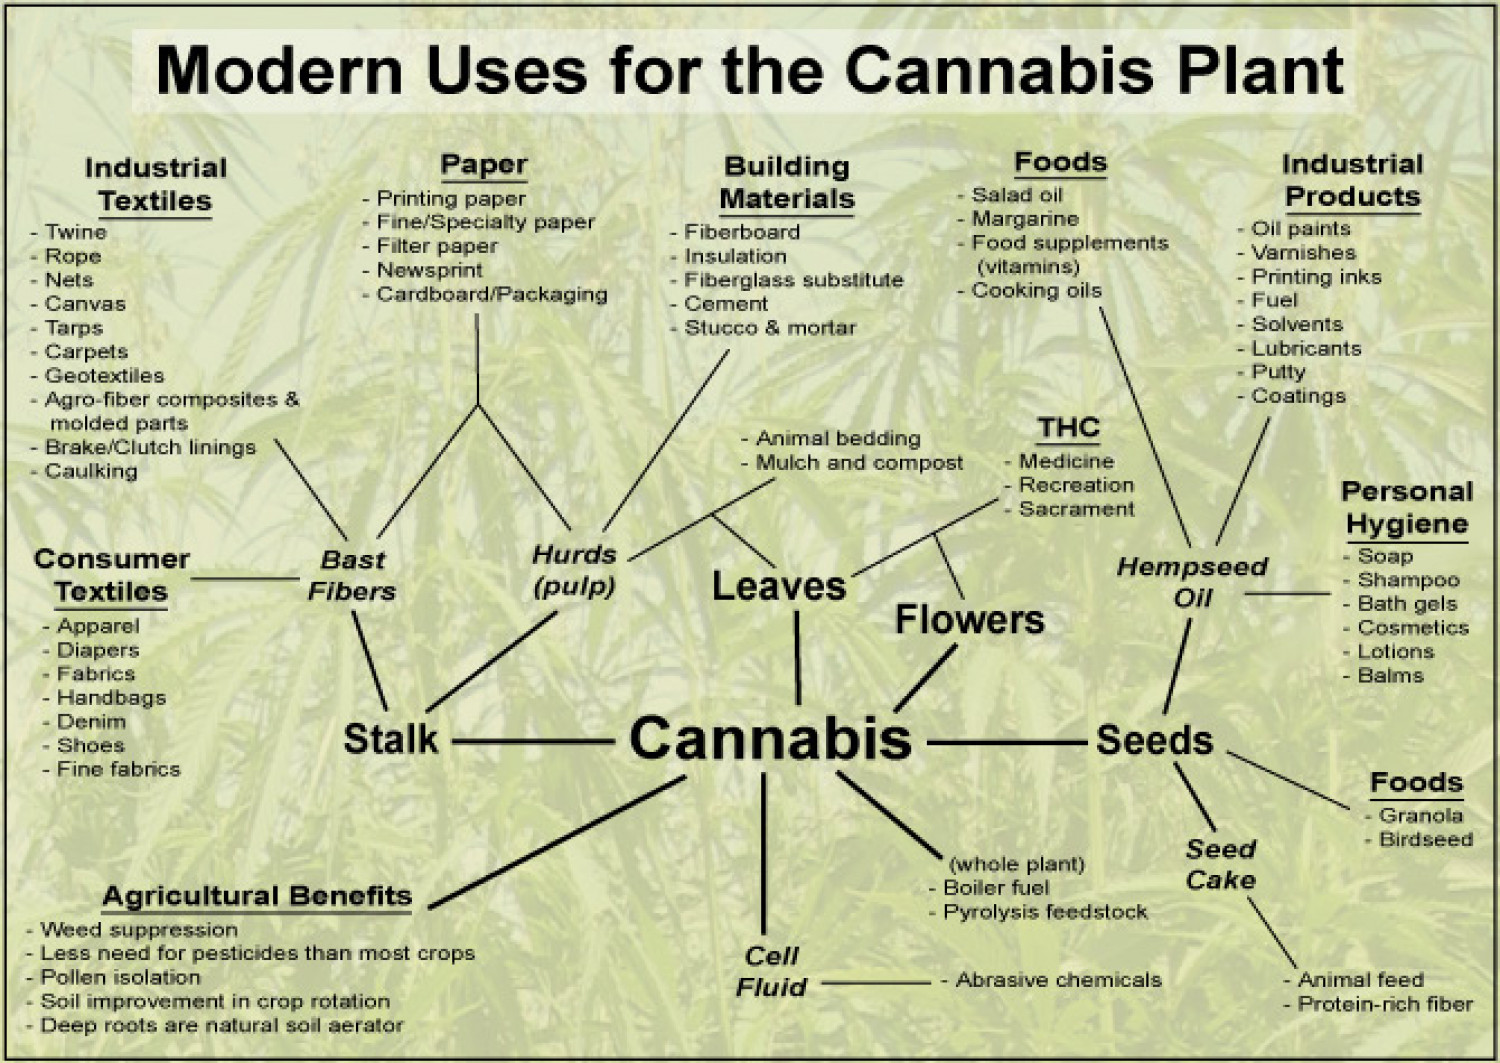 http://thumbnails-visually.netdna-ssl.com/modern-uses-for-the-cannabis-plant_50290aa50f1a2_w1500.jpg